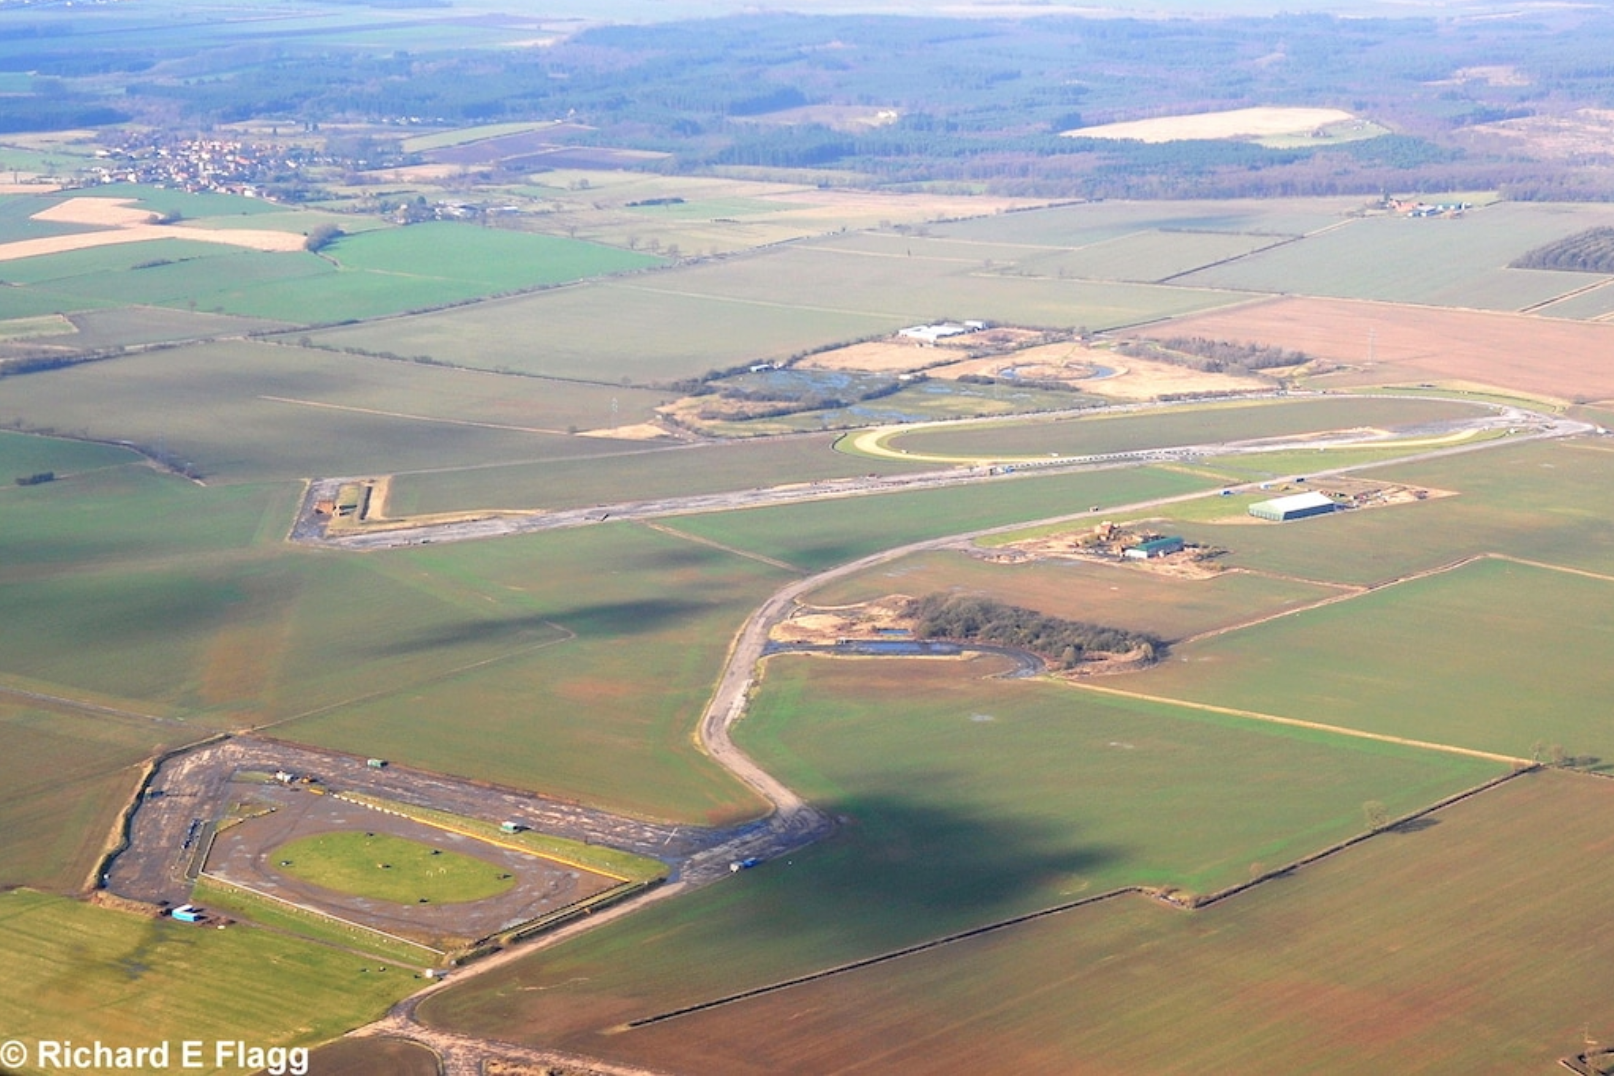 006Aerial view 2 of RAF Blyton Airfield - 12 February 2011.png